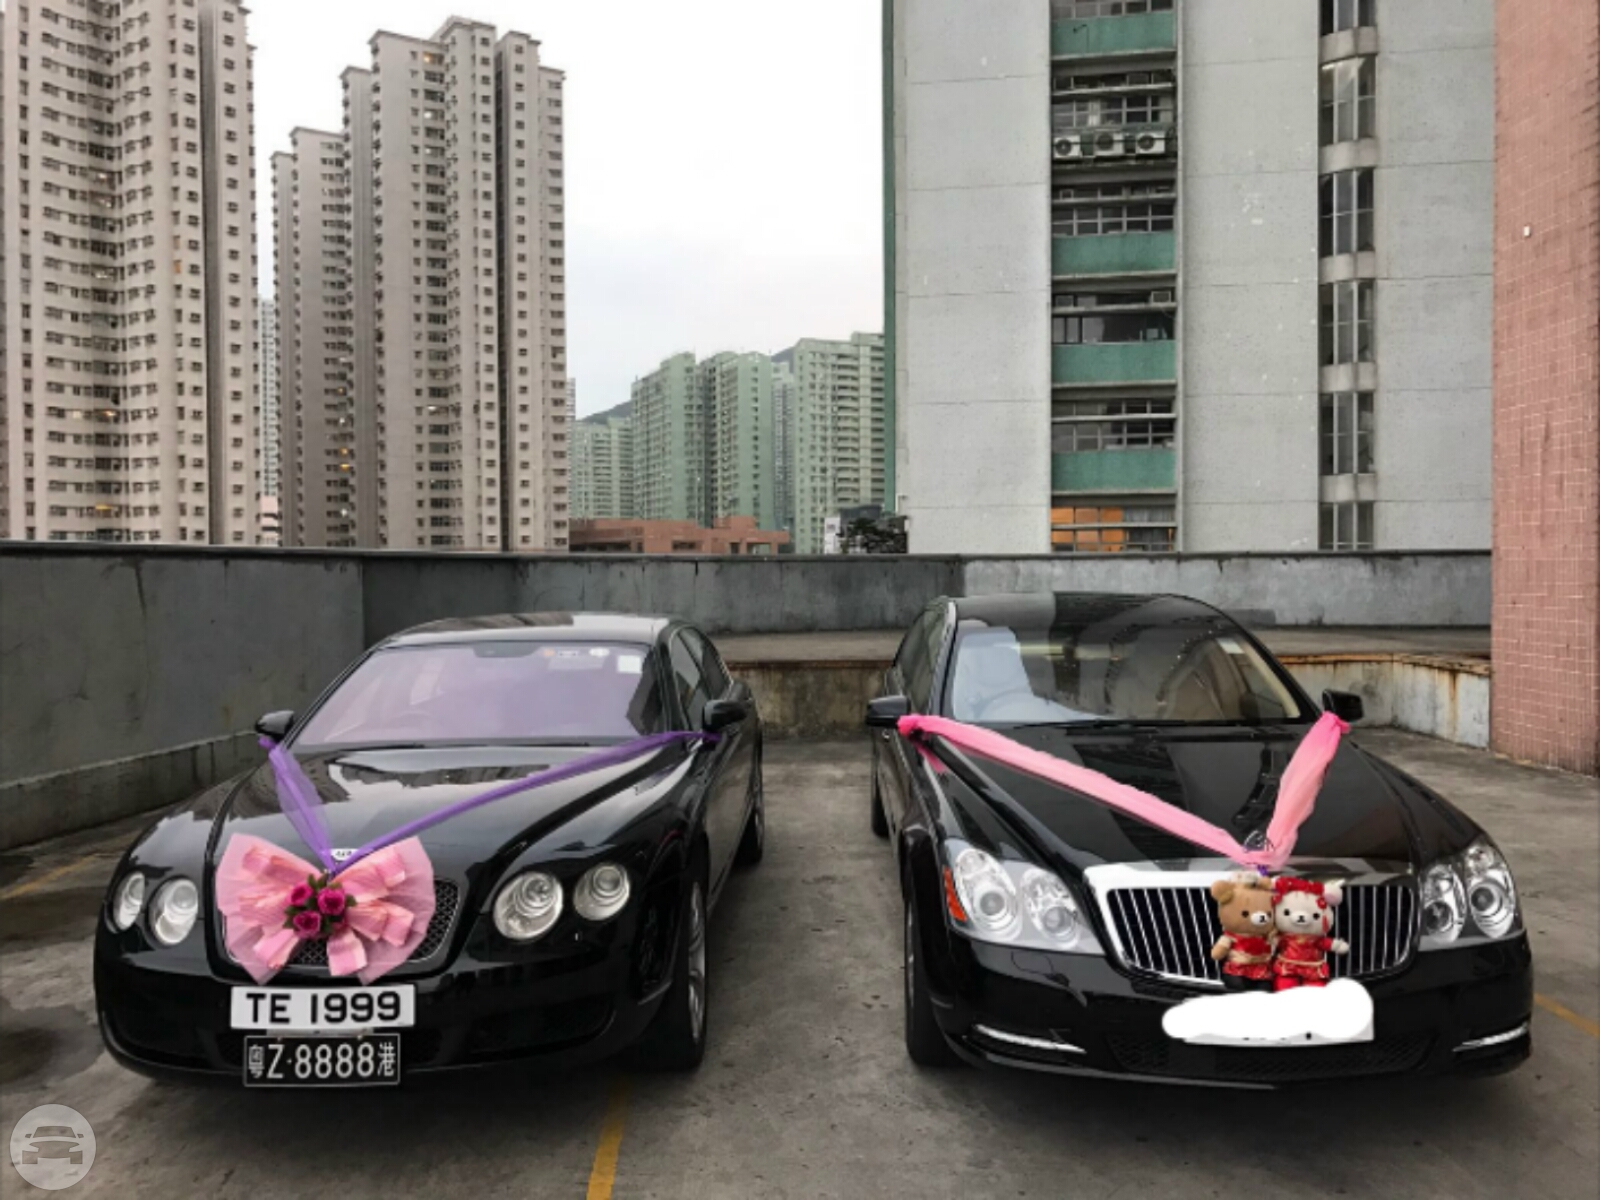 Bentley Sedan  / Hong Kong Island, Hong Kong   / Hourly HKD 749.00